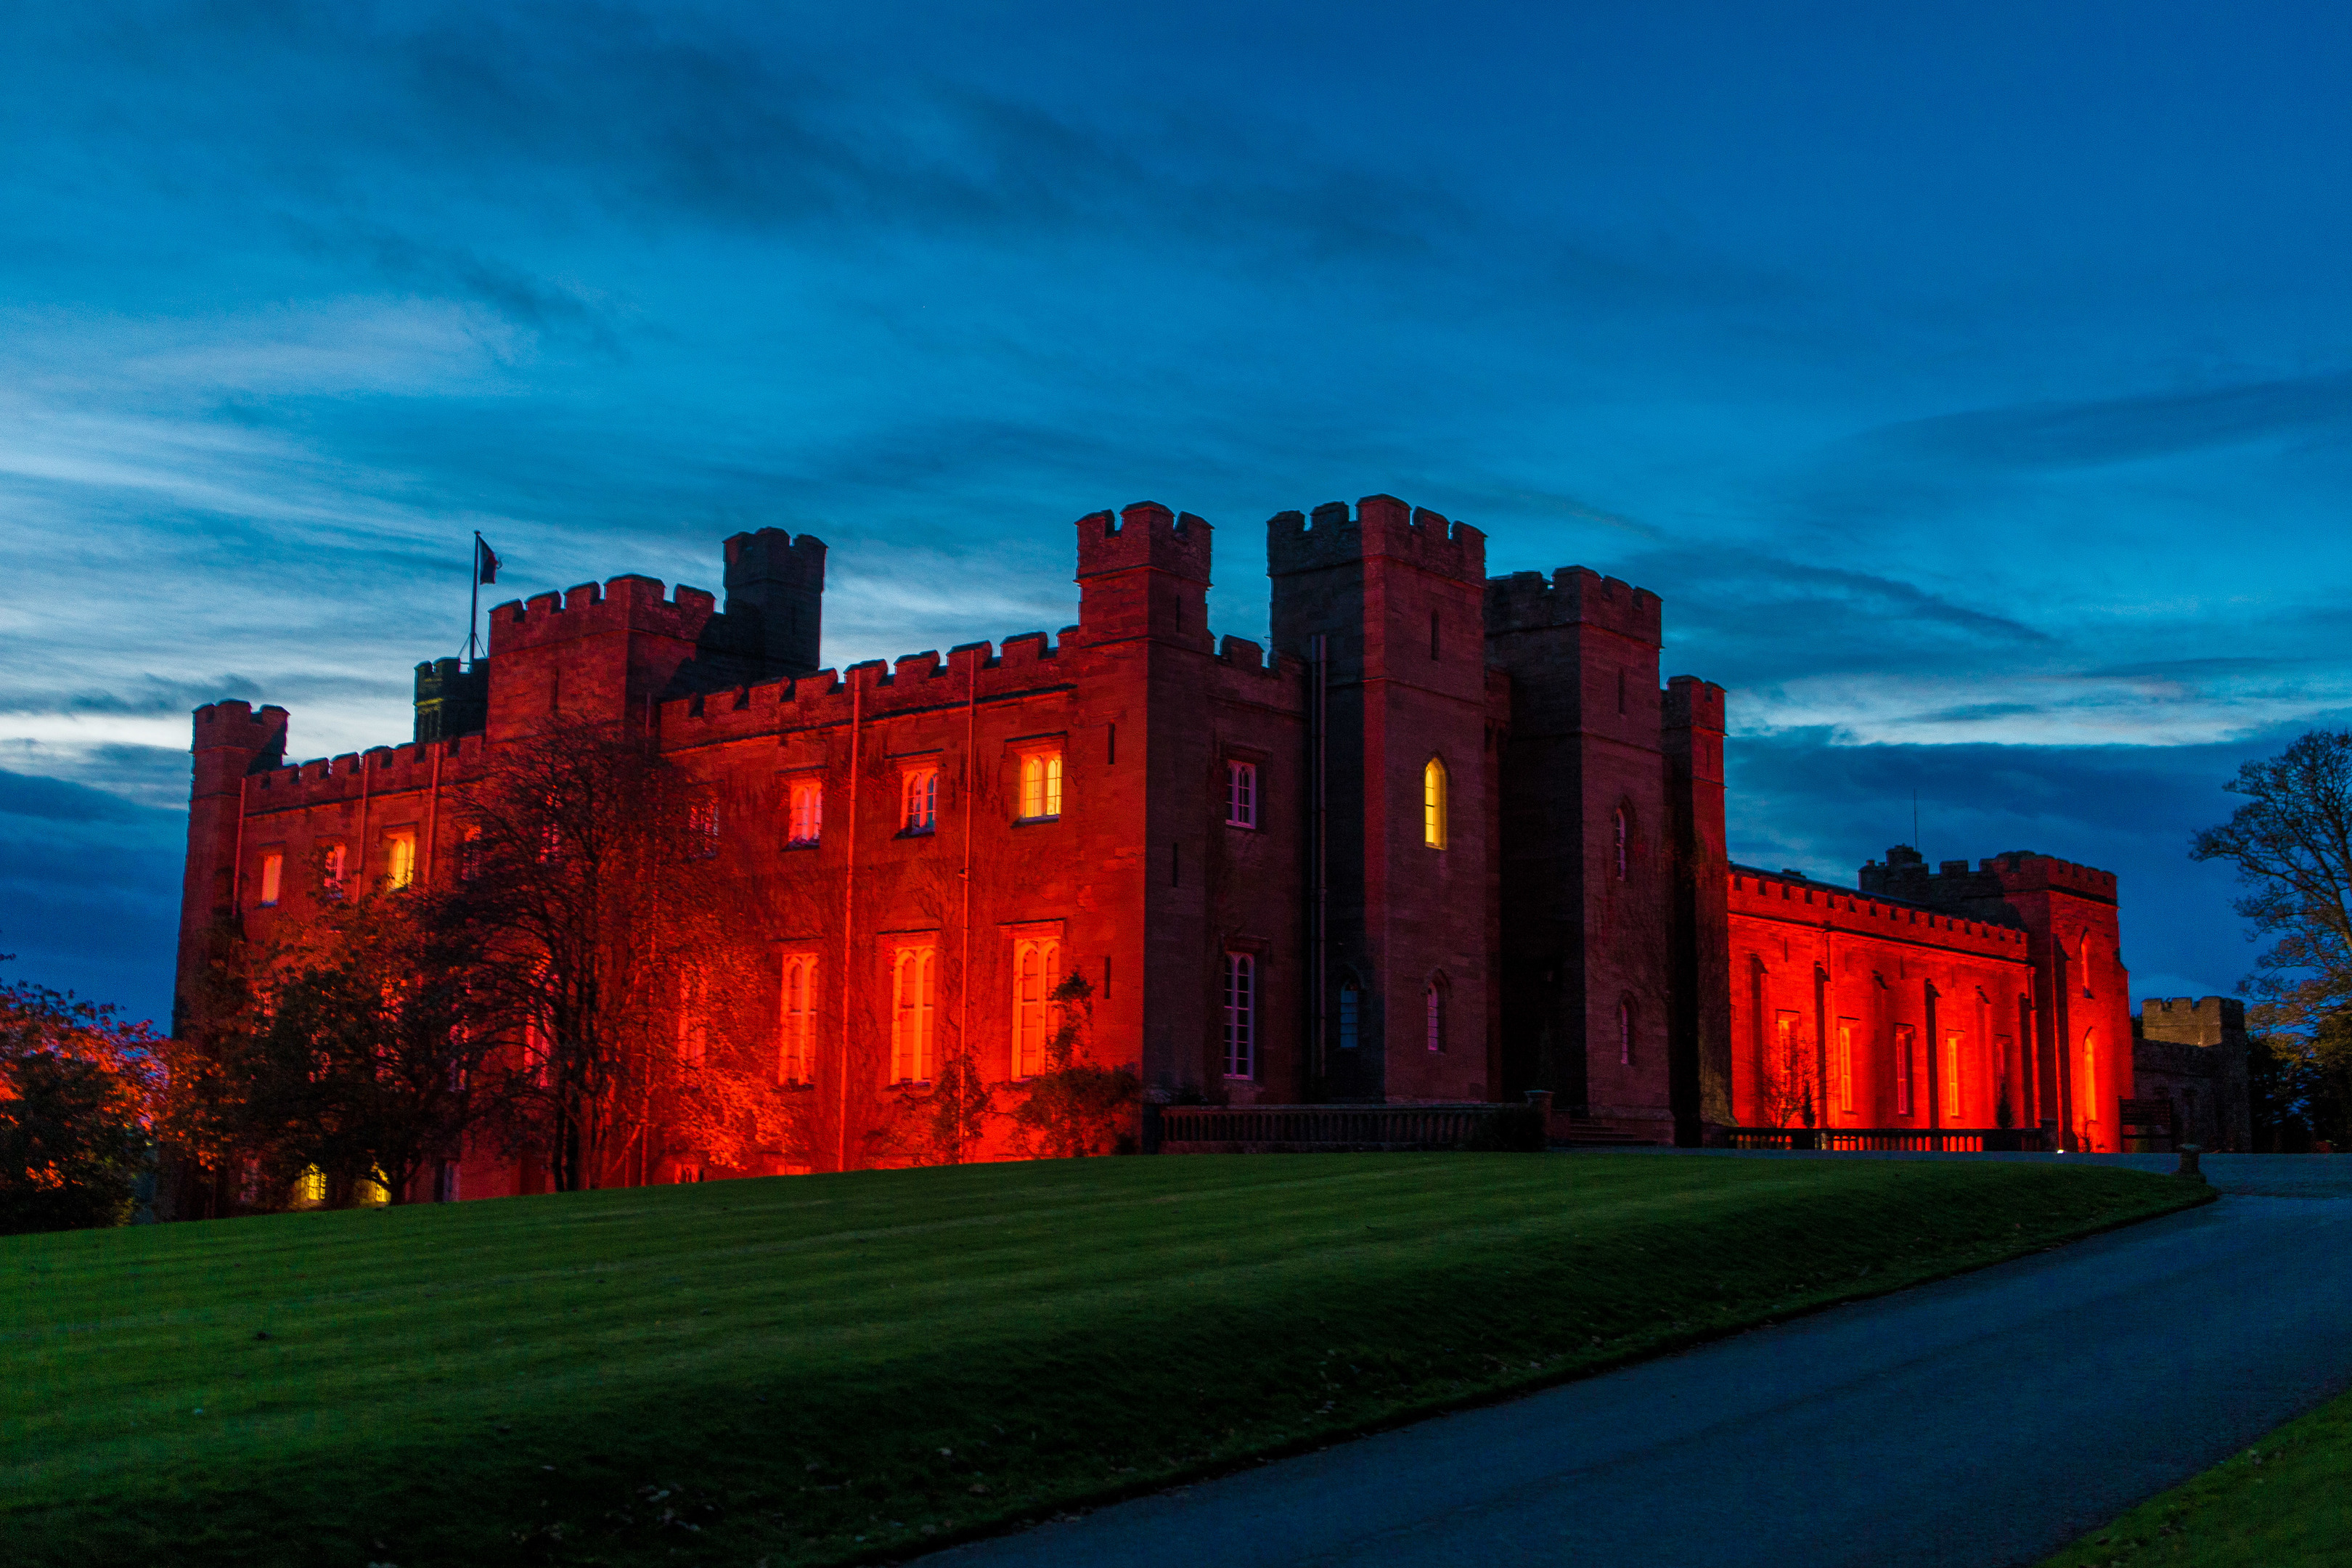 Scone Palace Lights up Red for Remembrance